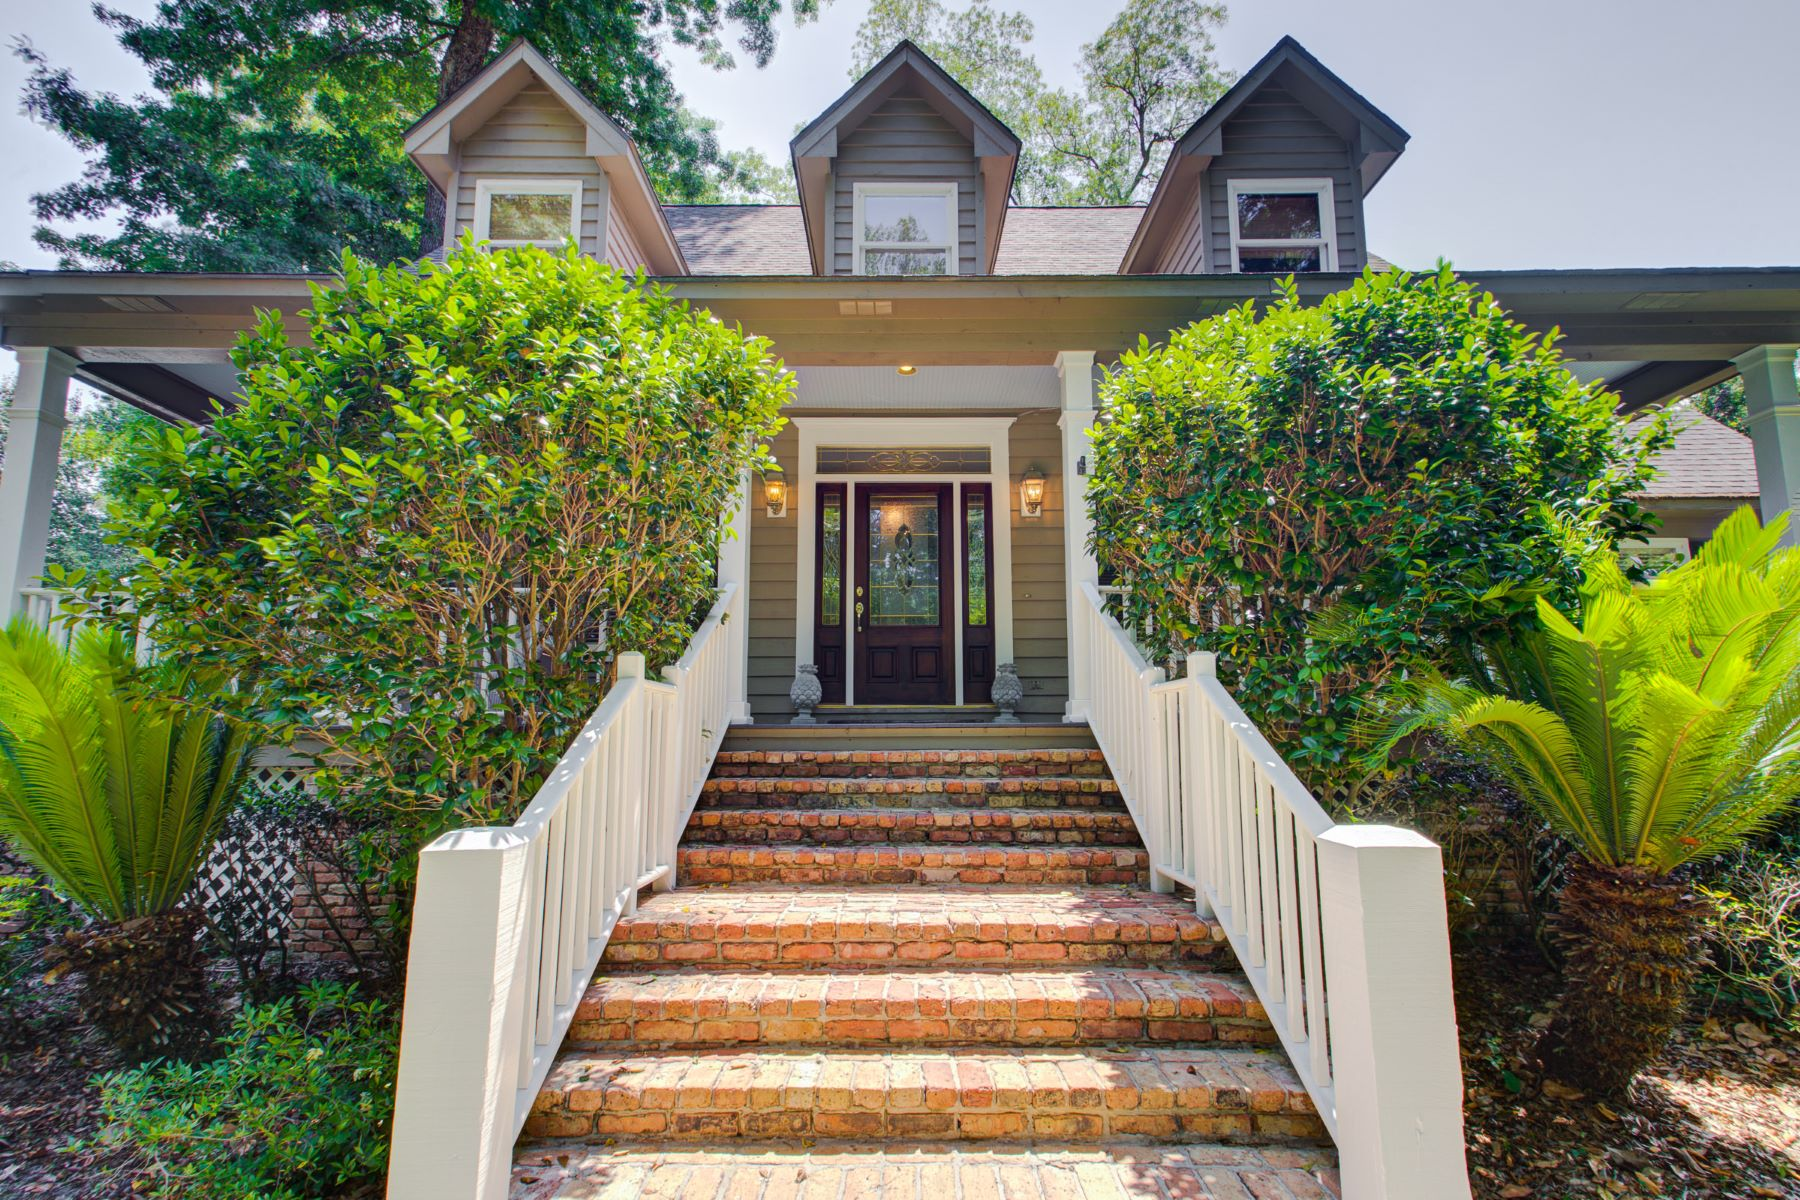 Single Family Homes for Active at Old Daphne 1504 Captain O'Neal Drive Daphne, Alabama 36526 United States